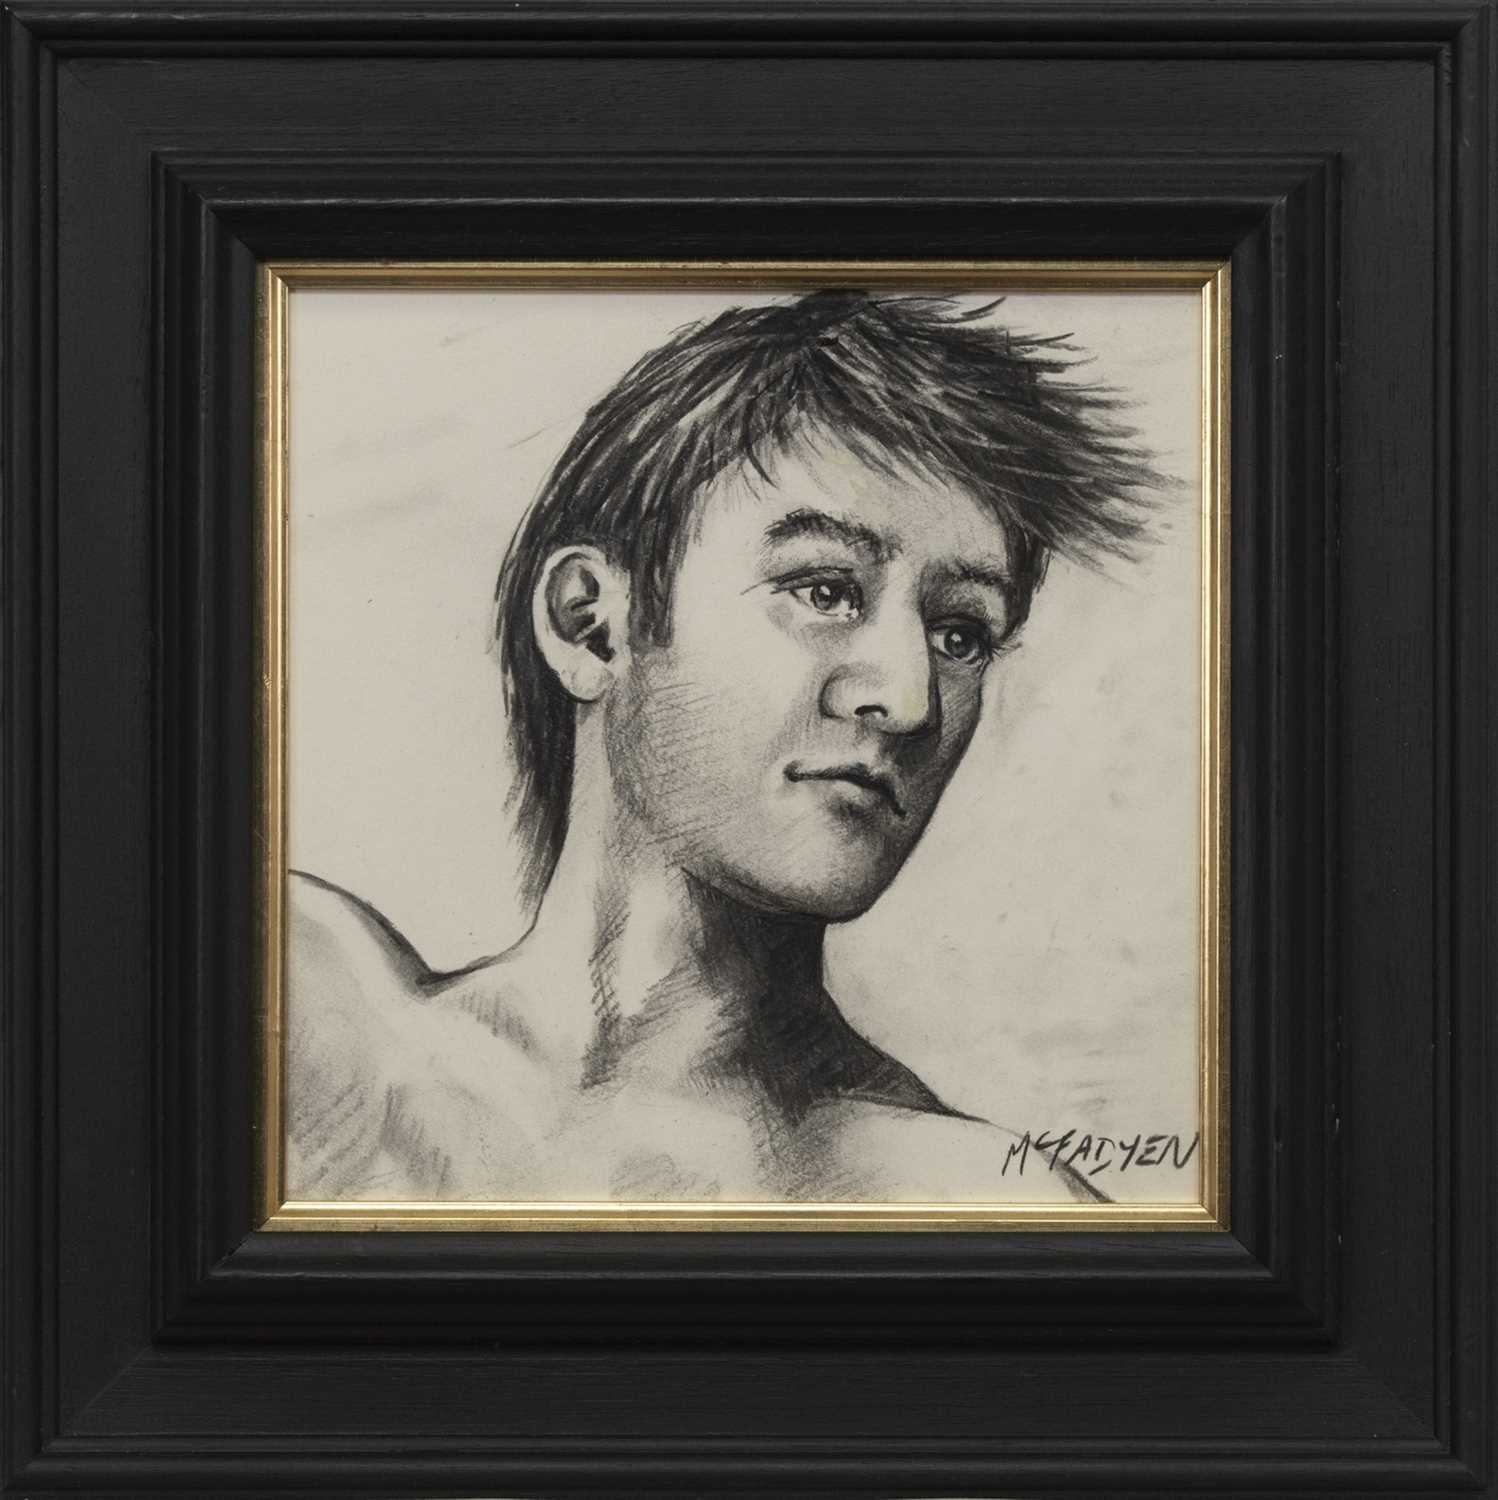 Lot 517 - STUDY OF A MAN, A CHARCOAL BY LEX MCFAYDEN